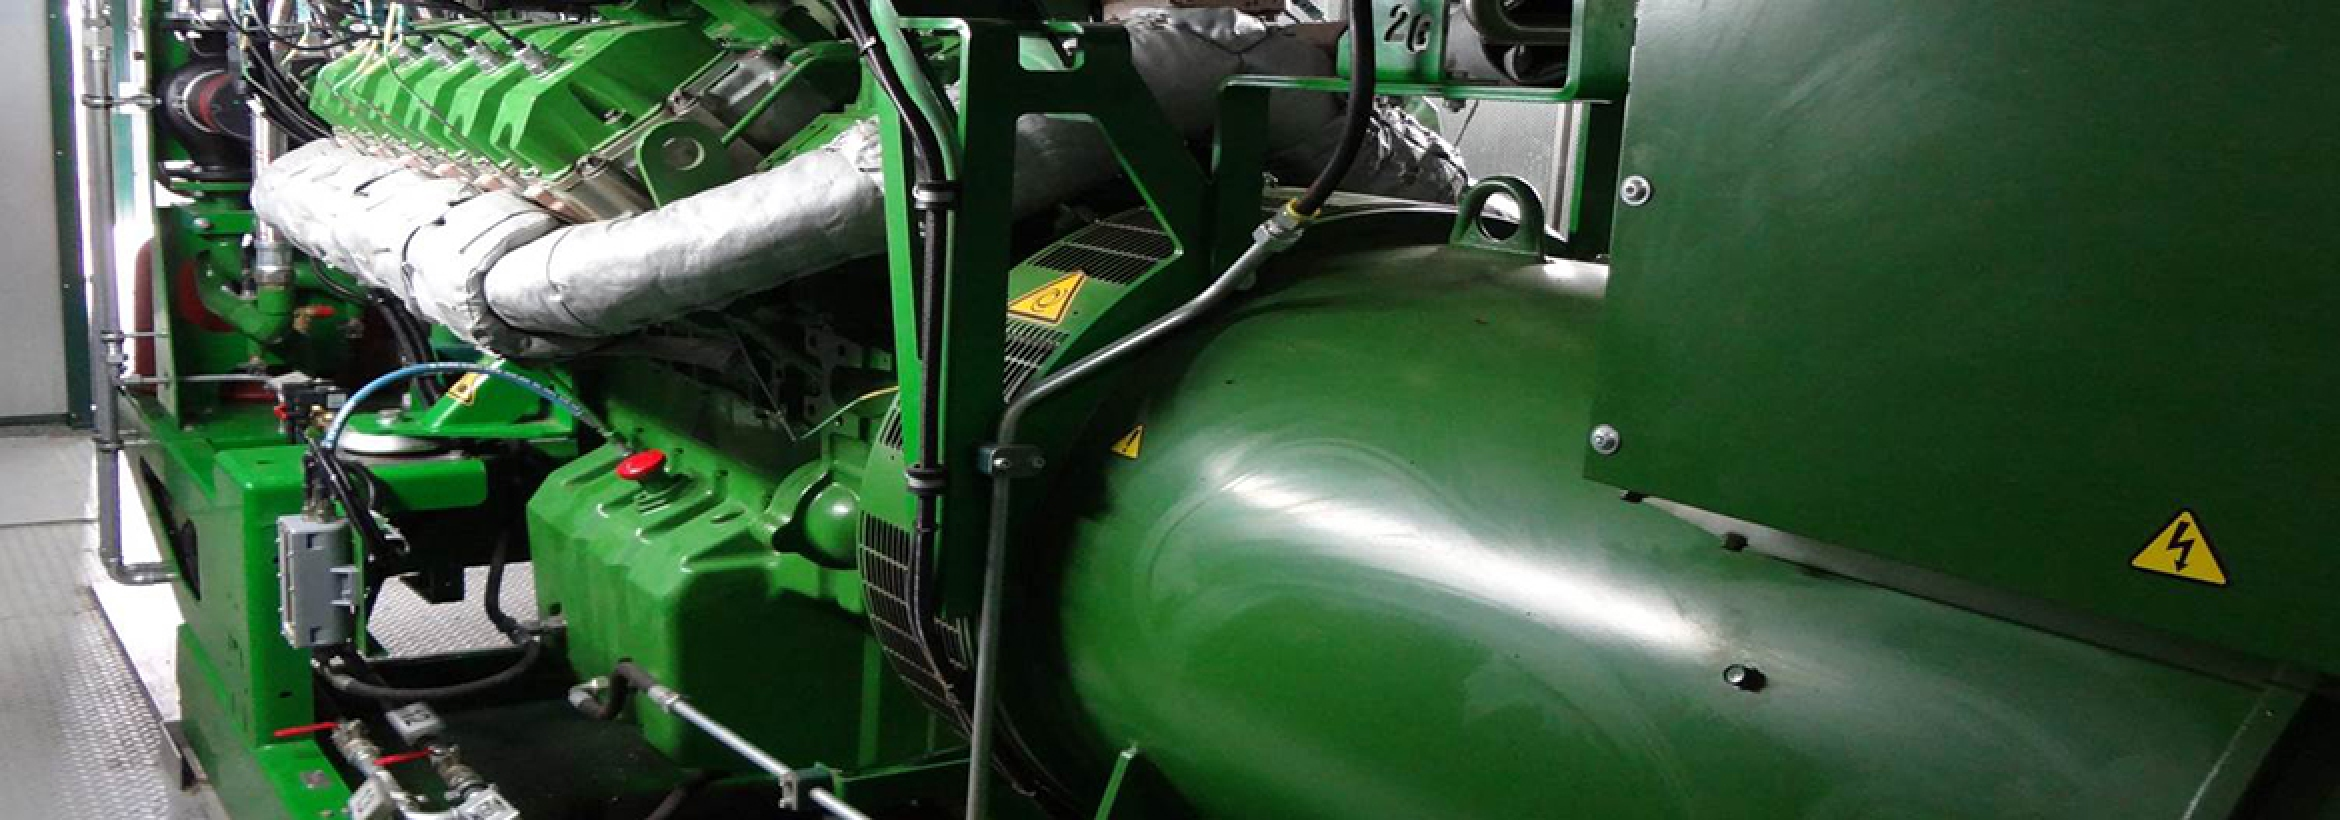 Combined heat and power machinery illustrating how the NFU Energy team support clients with the Combined Heat and Power Quality Assurance Programme